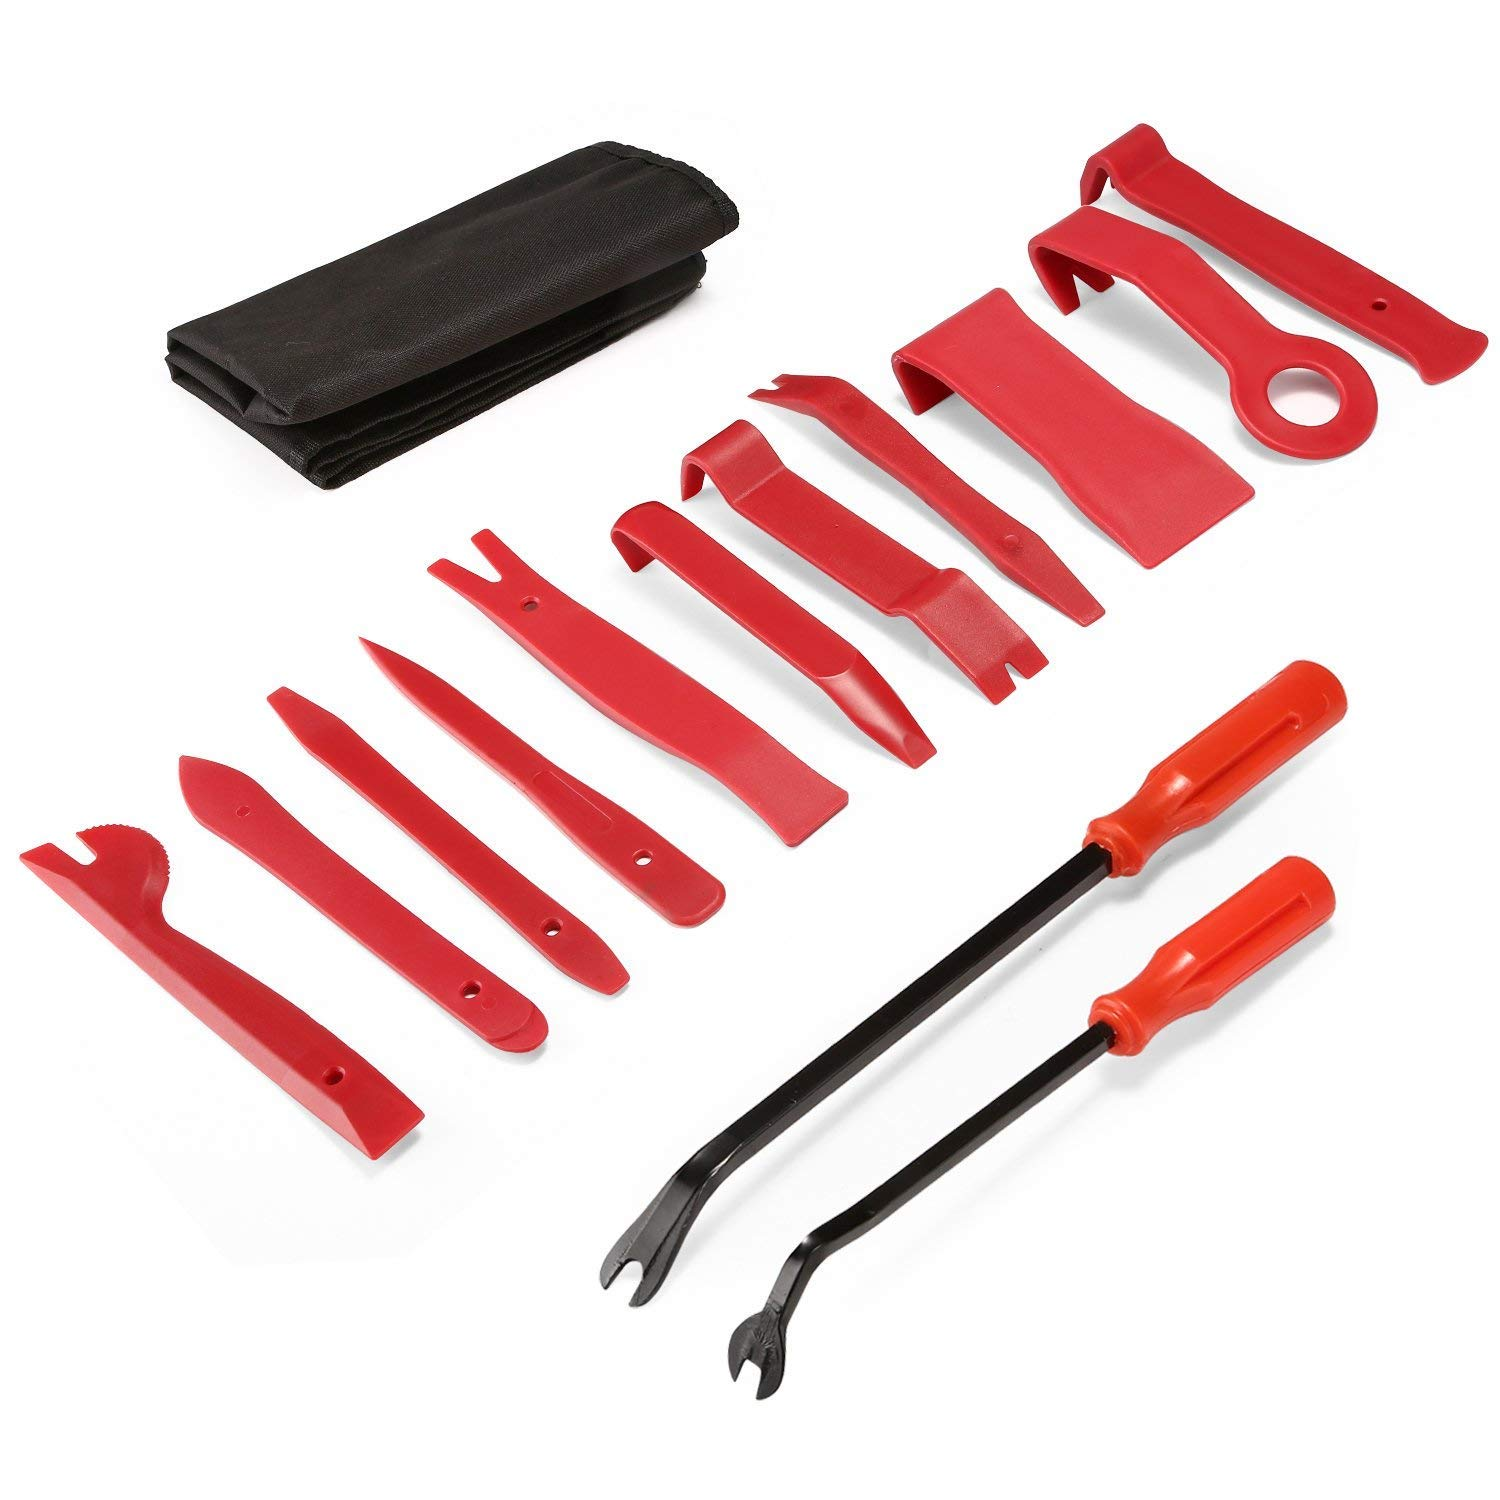 PullPritt Auto Trim Removal Tool Set, 13 Pieces Car Panel Removal Tools Kit with Nylon Storage Pouch by PullPritt (Image #6)